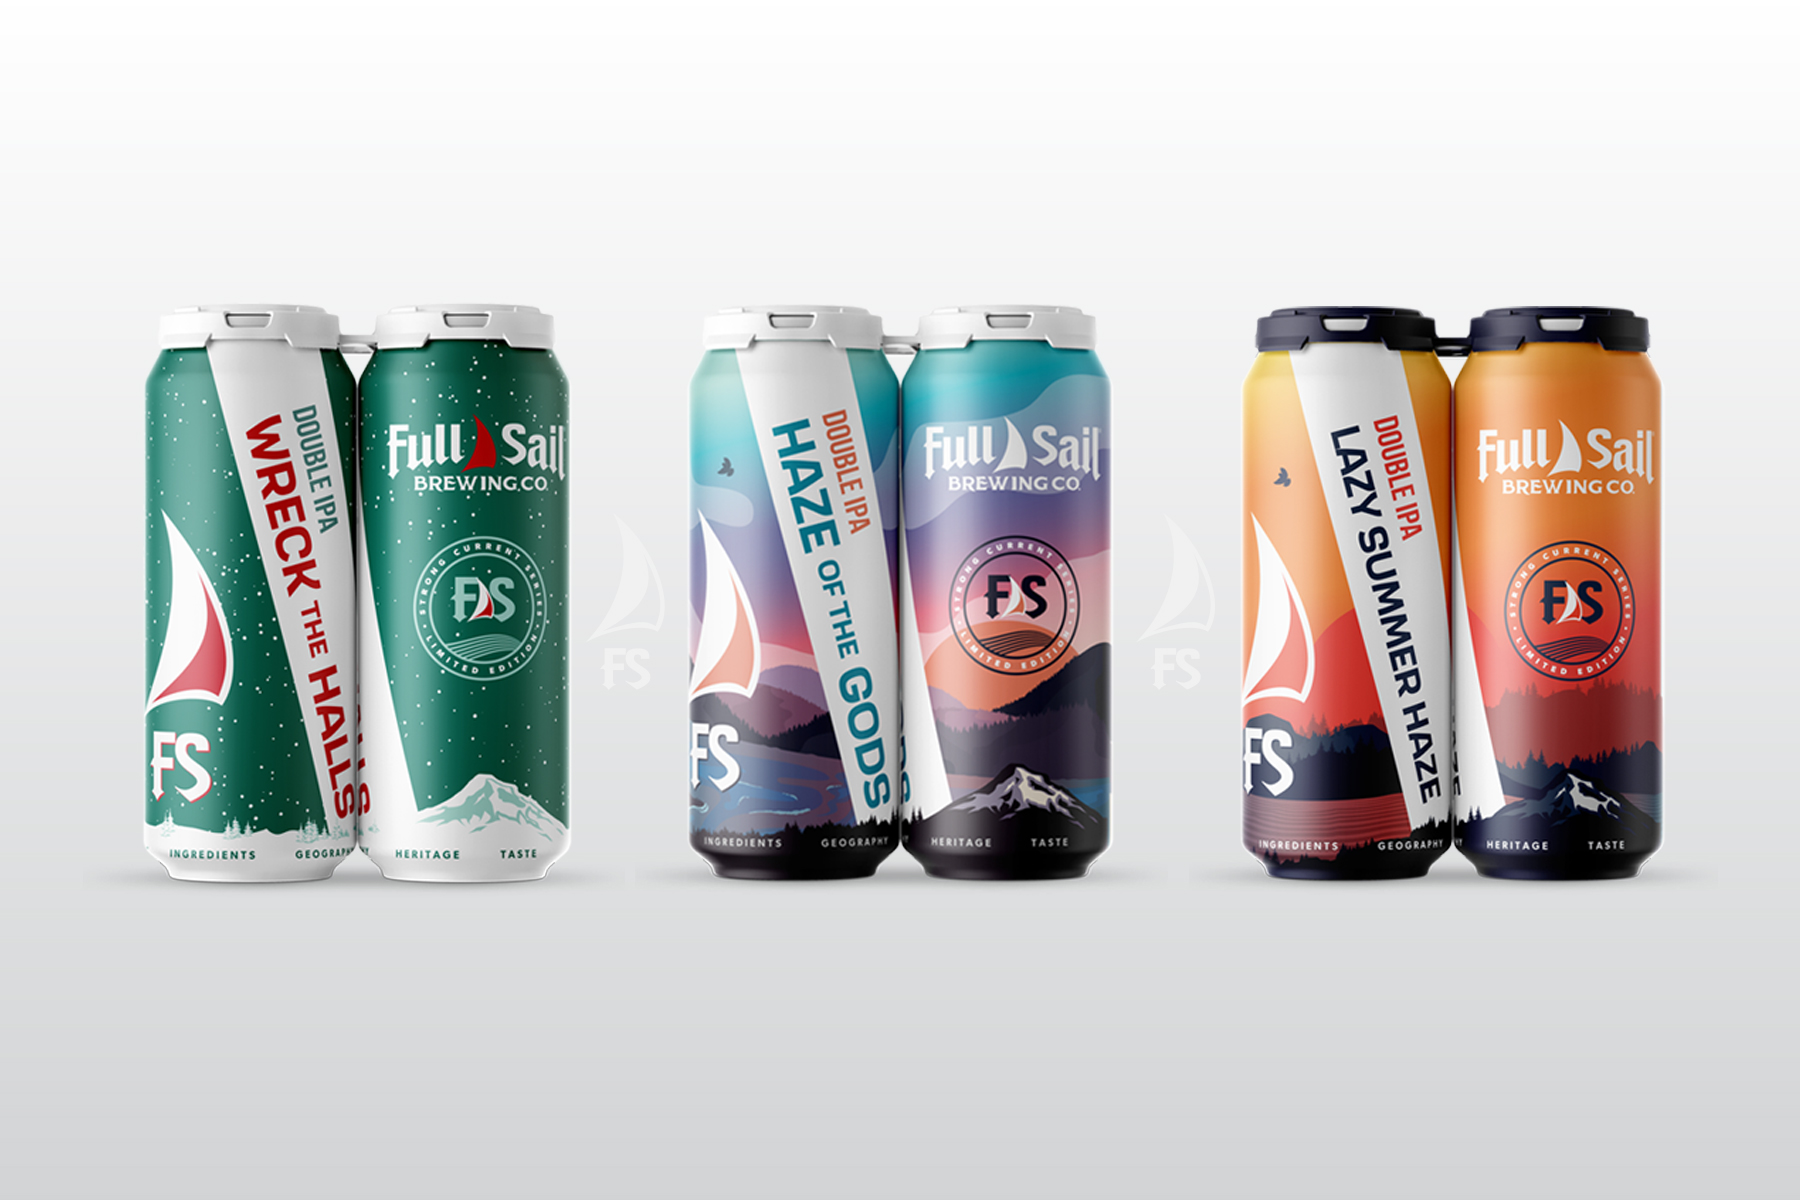 Full Sail Brewing Strong Current Series - Wreck The Halls, Haze of the Gods, and Lazy Summer Haze